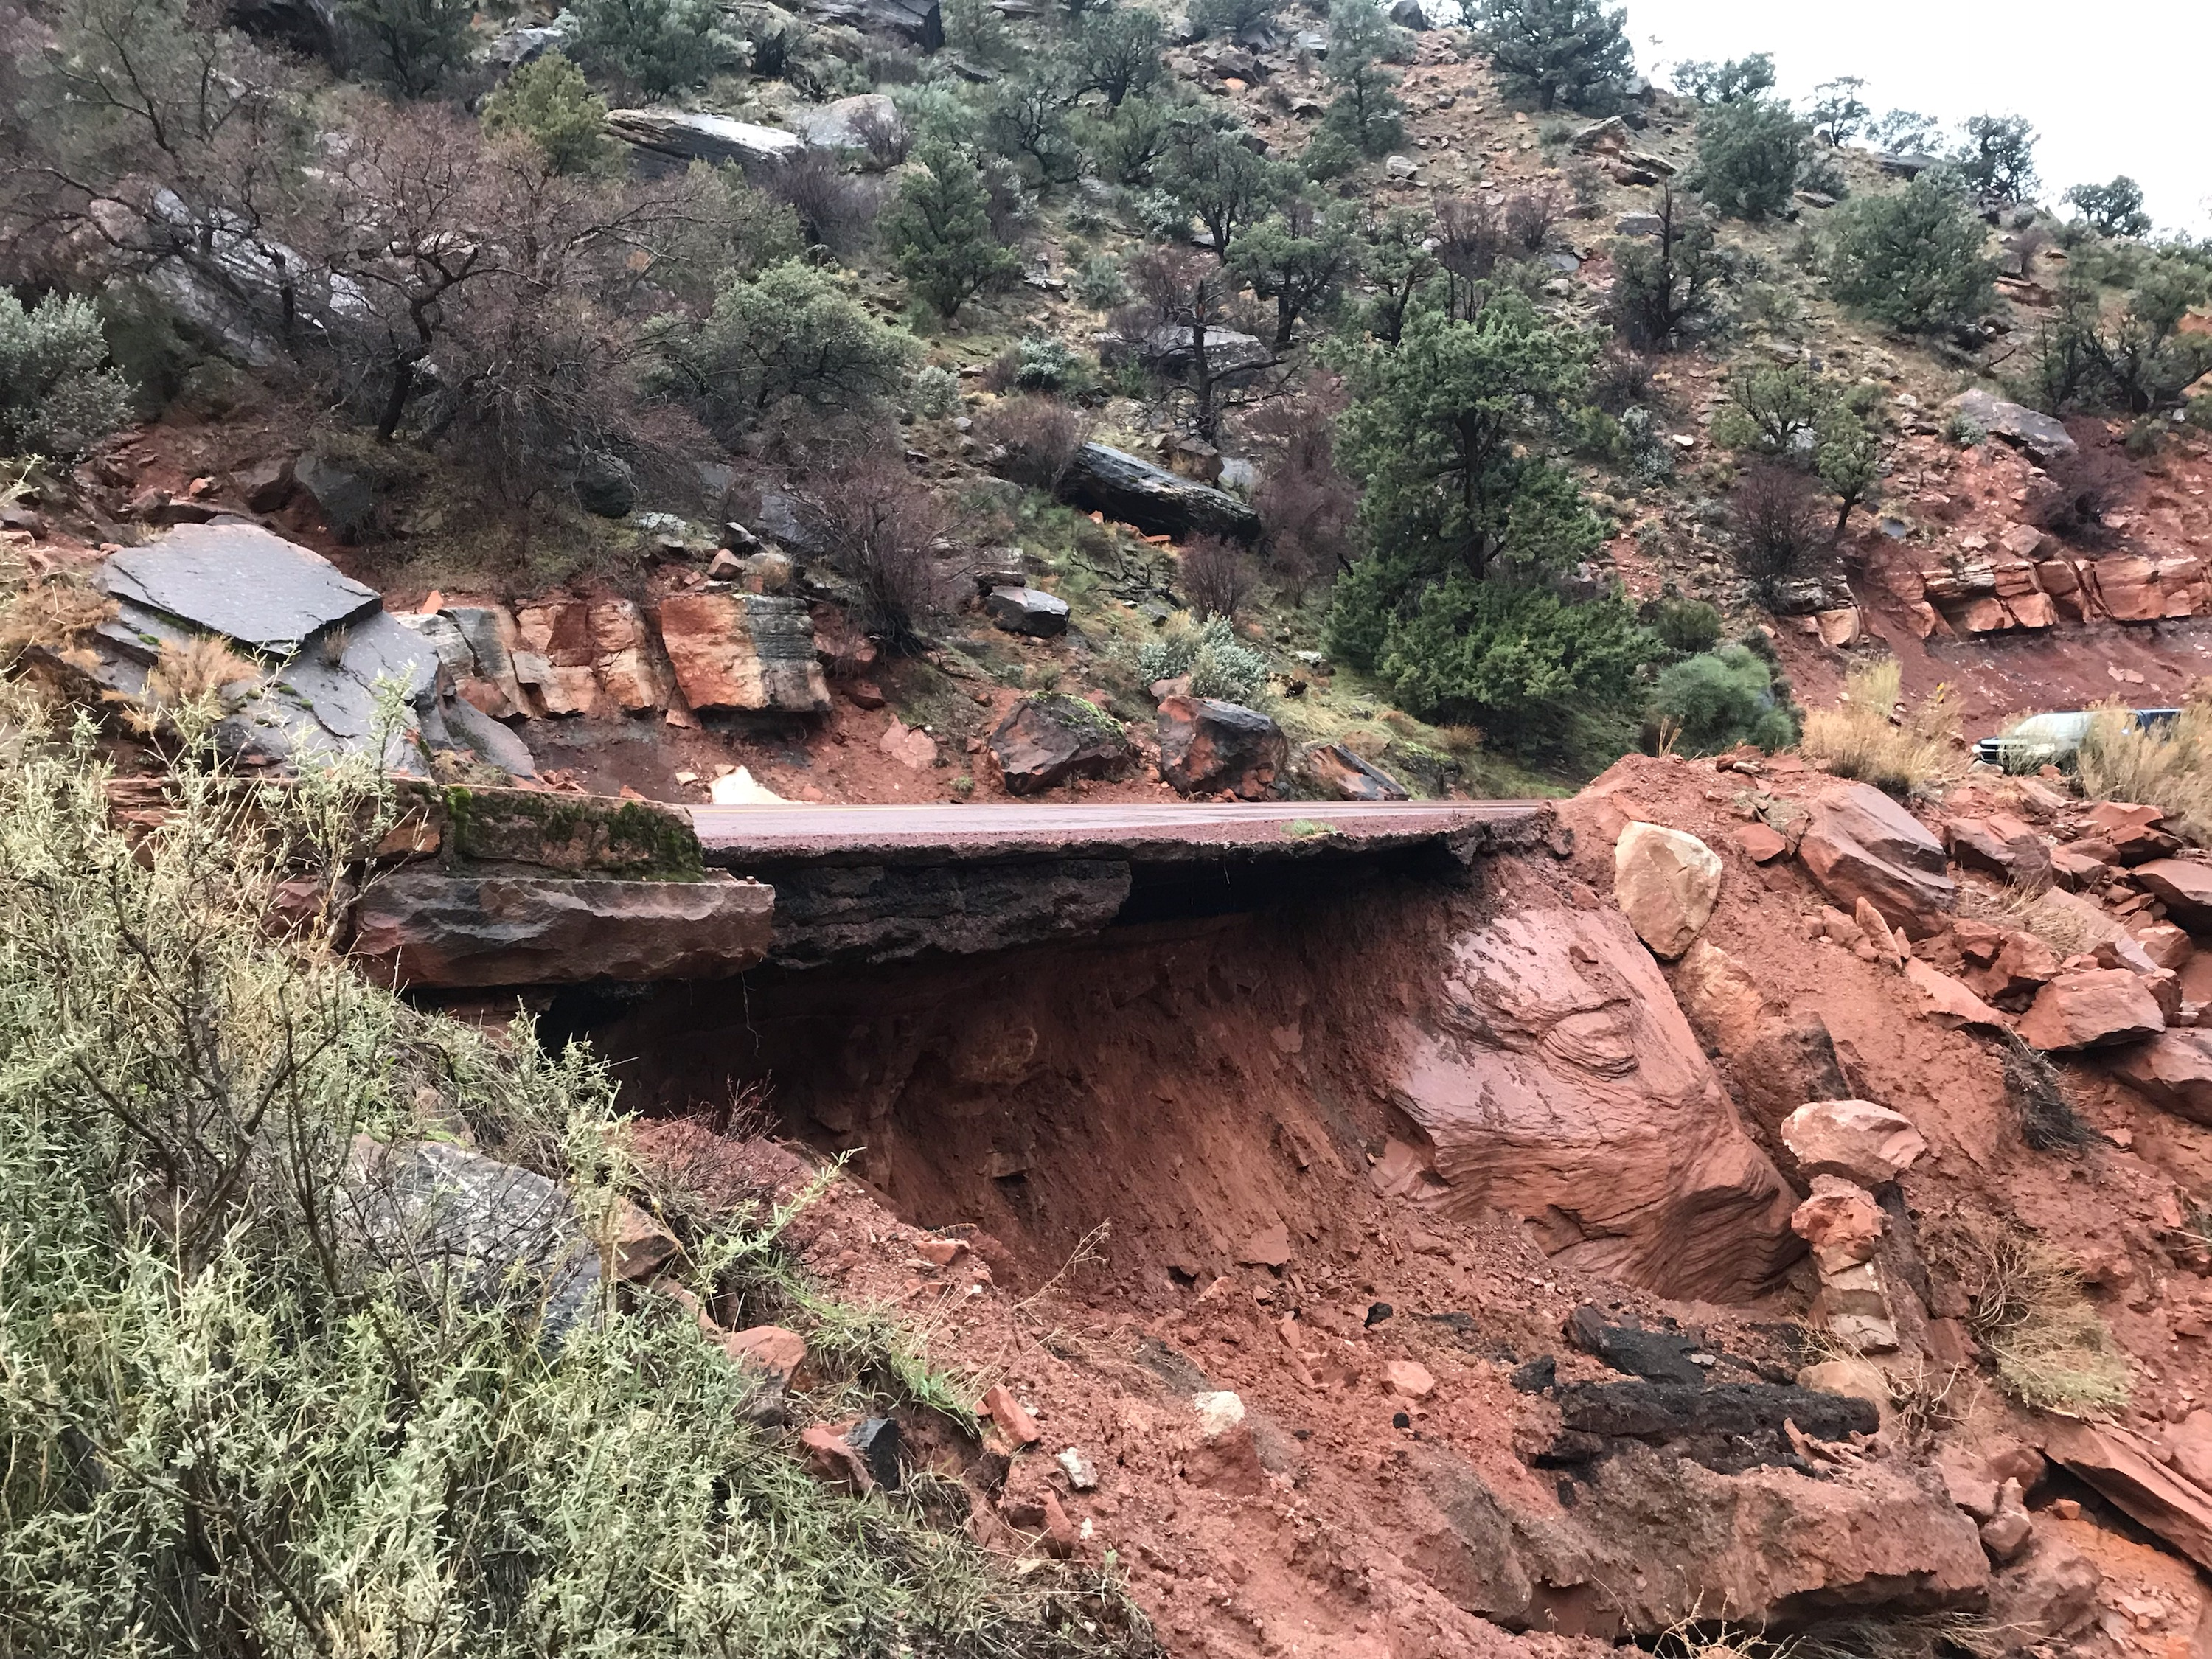 Traffic Alert: Road closures at Zion National Park